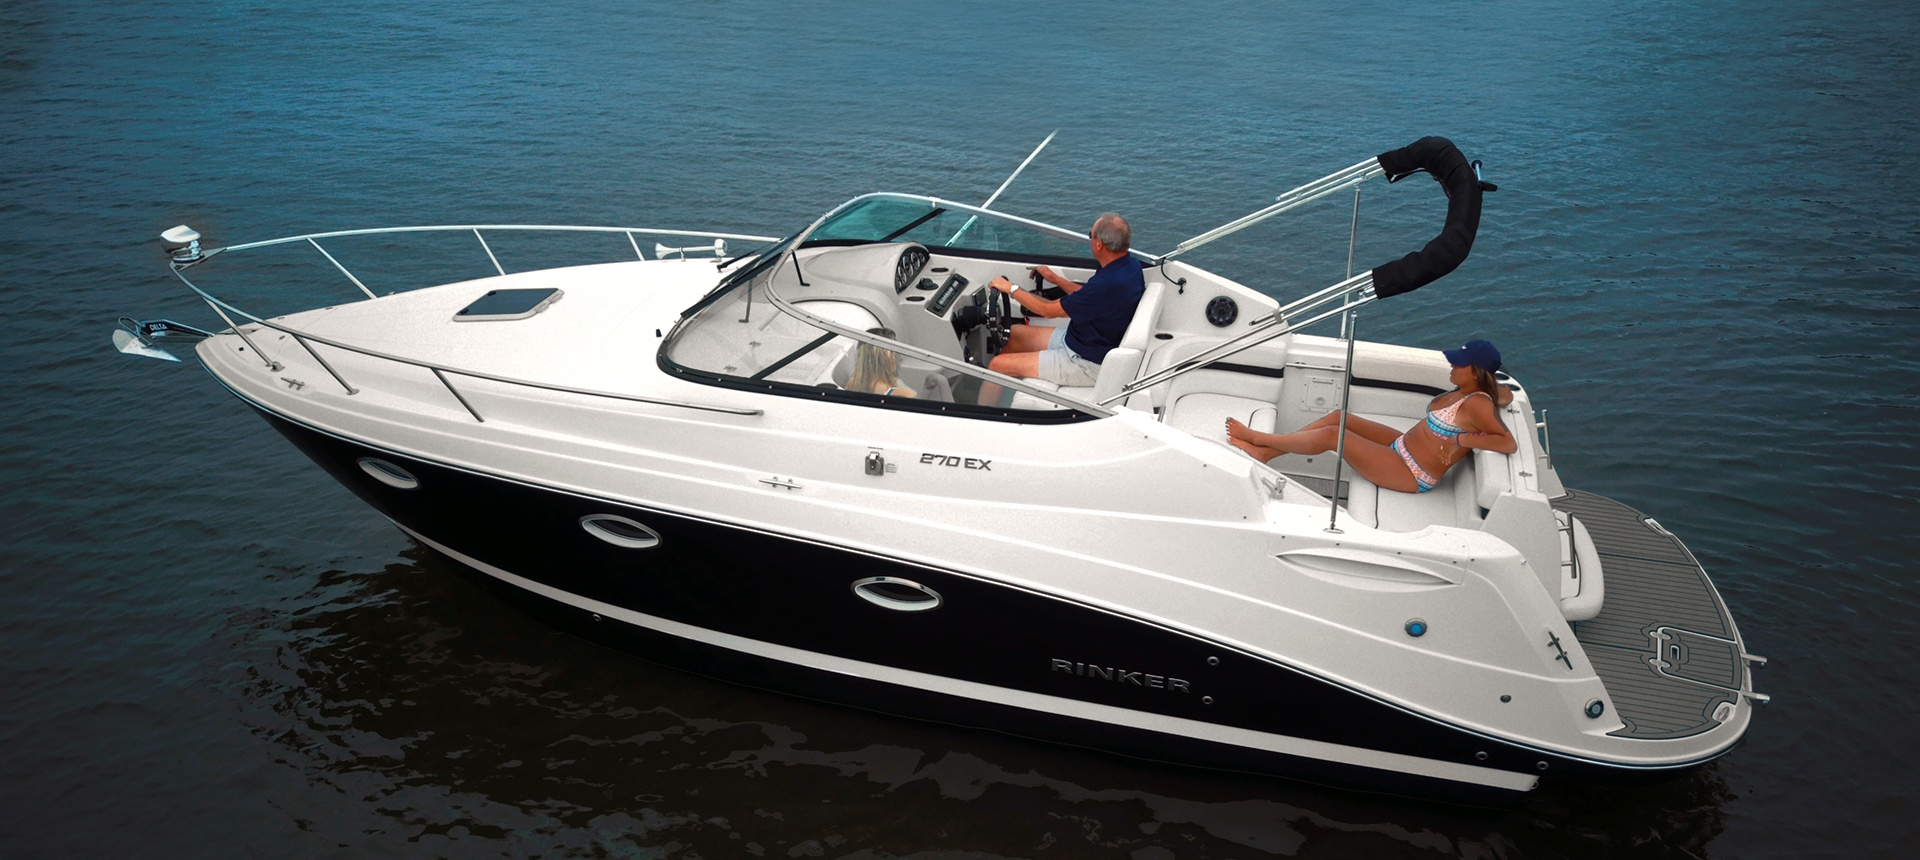 Pic of 270EX boat on the water